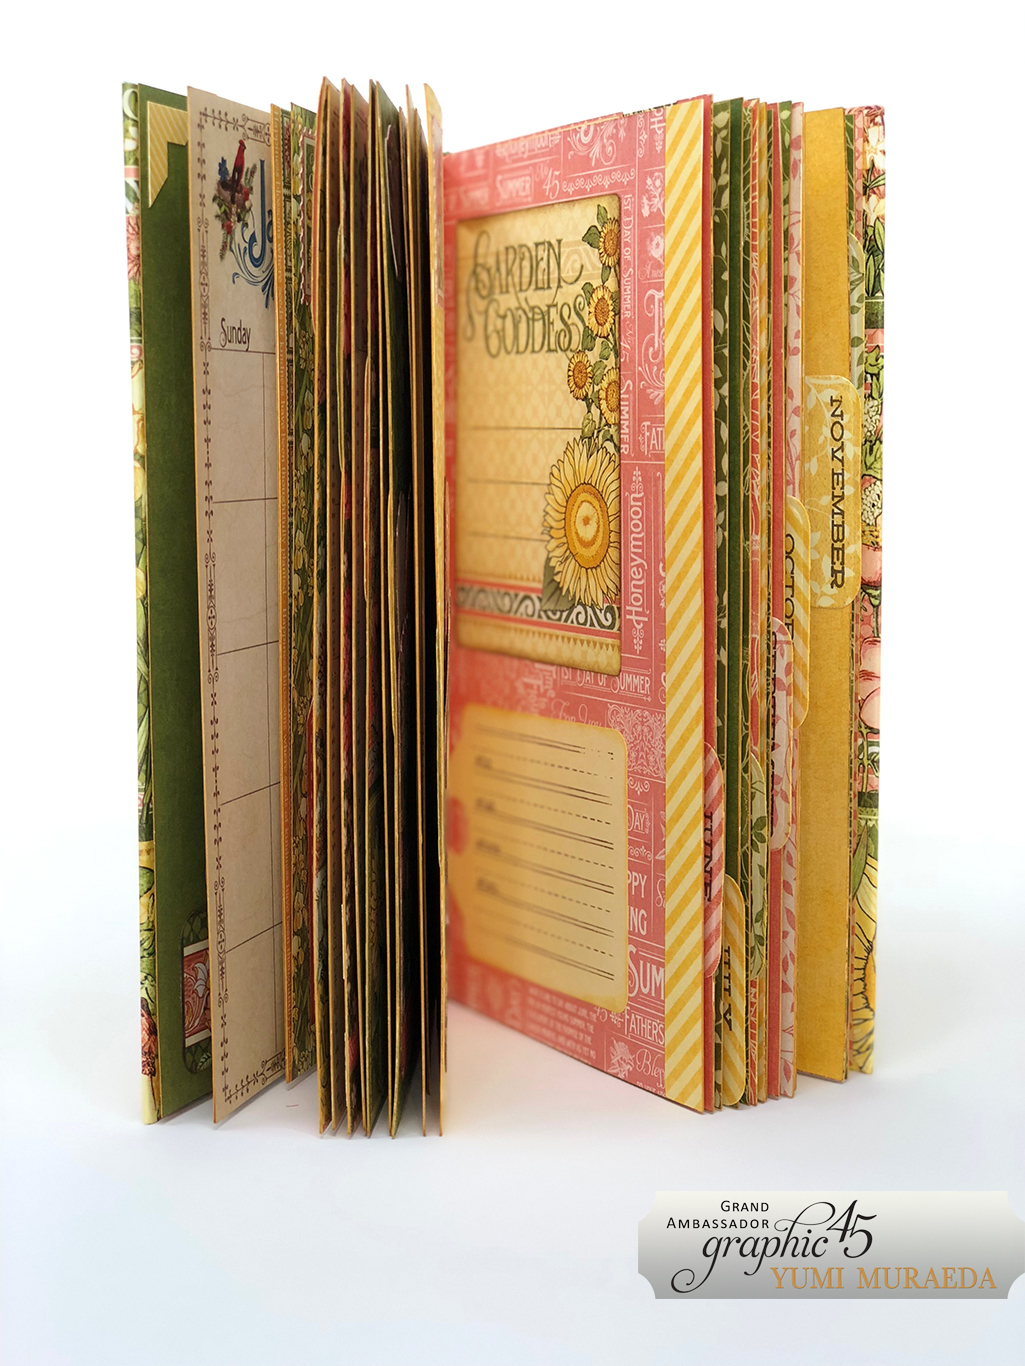 4Advent Calendar Bookdesign by Yumi Muraeda products by Graphic 45